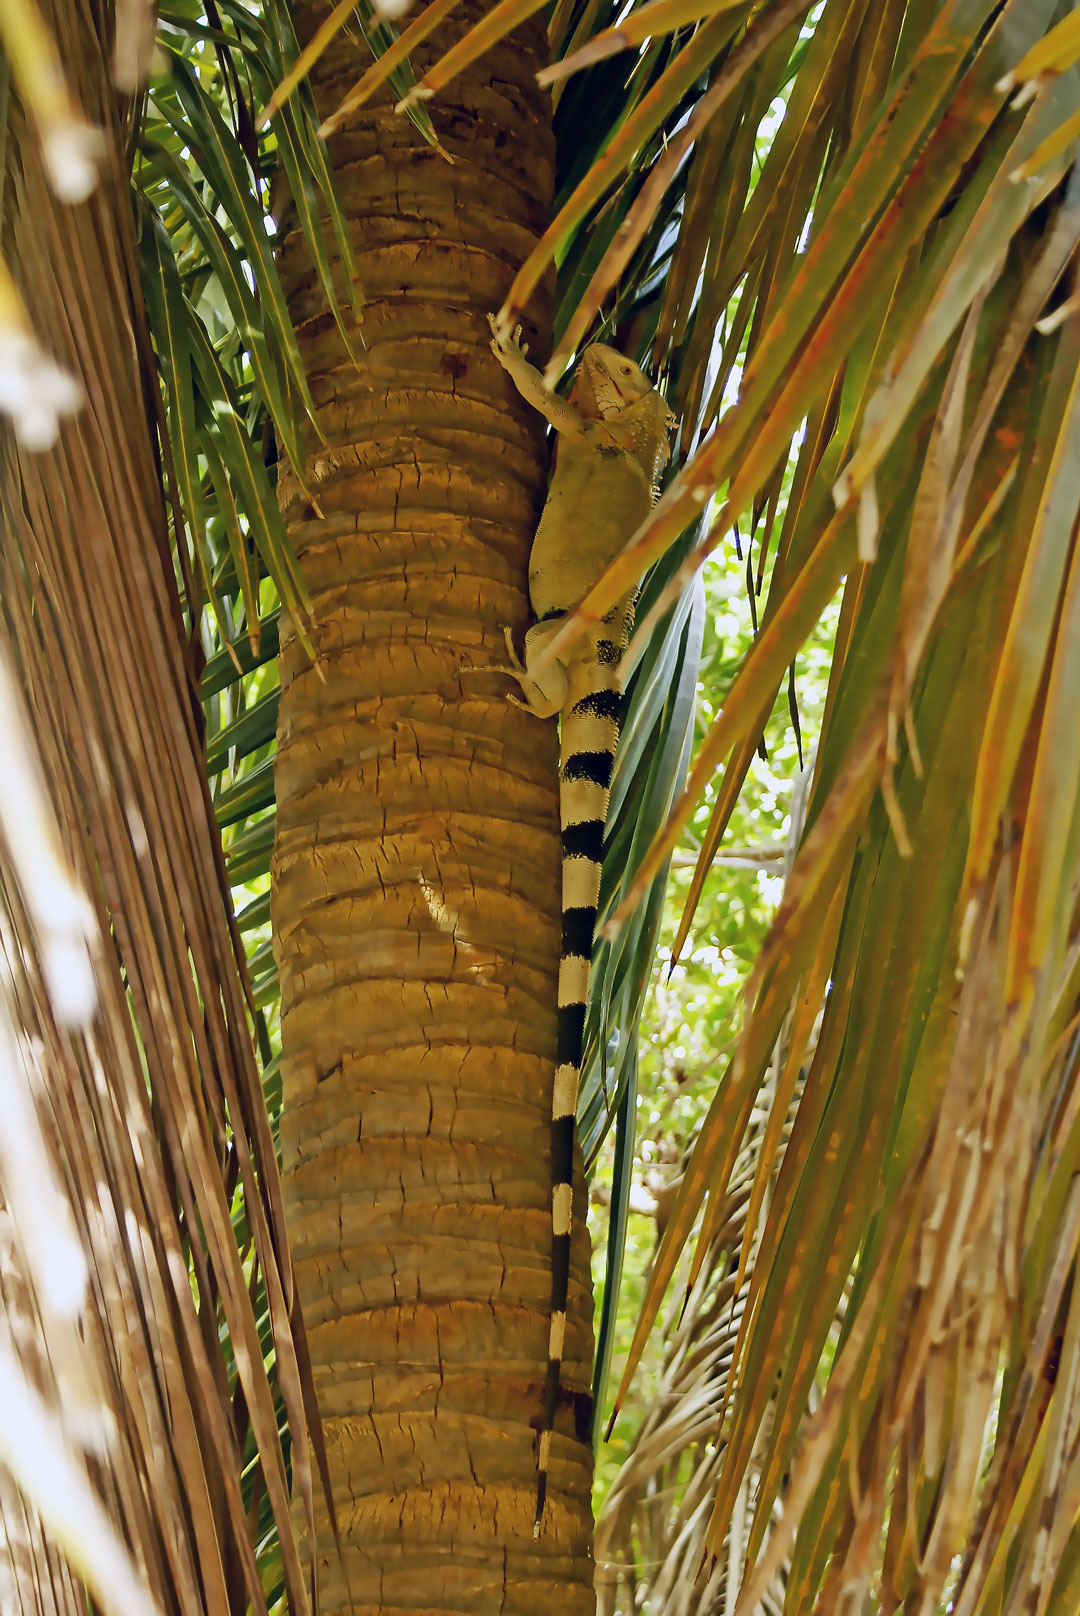 The iguana returning home after lunch. Photo by Ovidiu Balaj